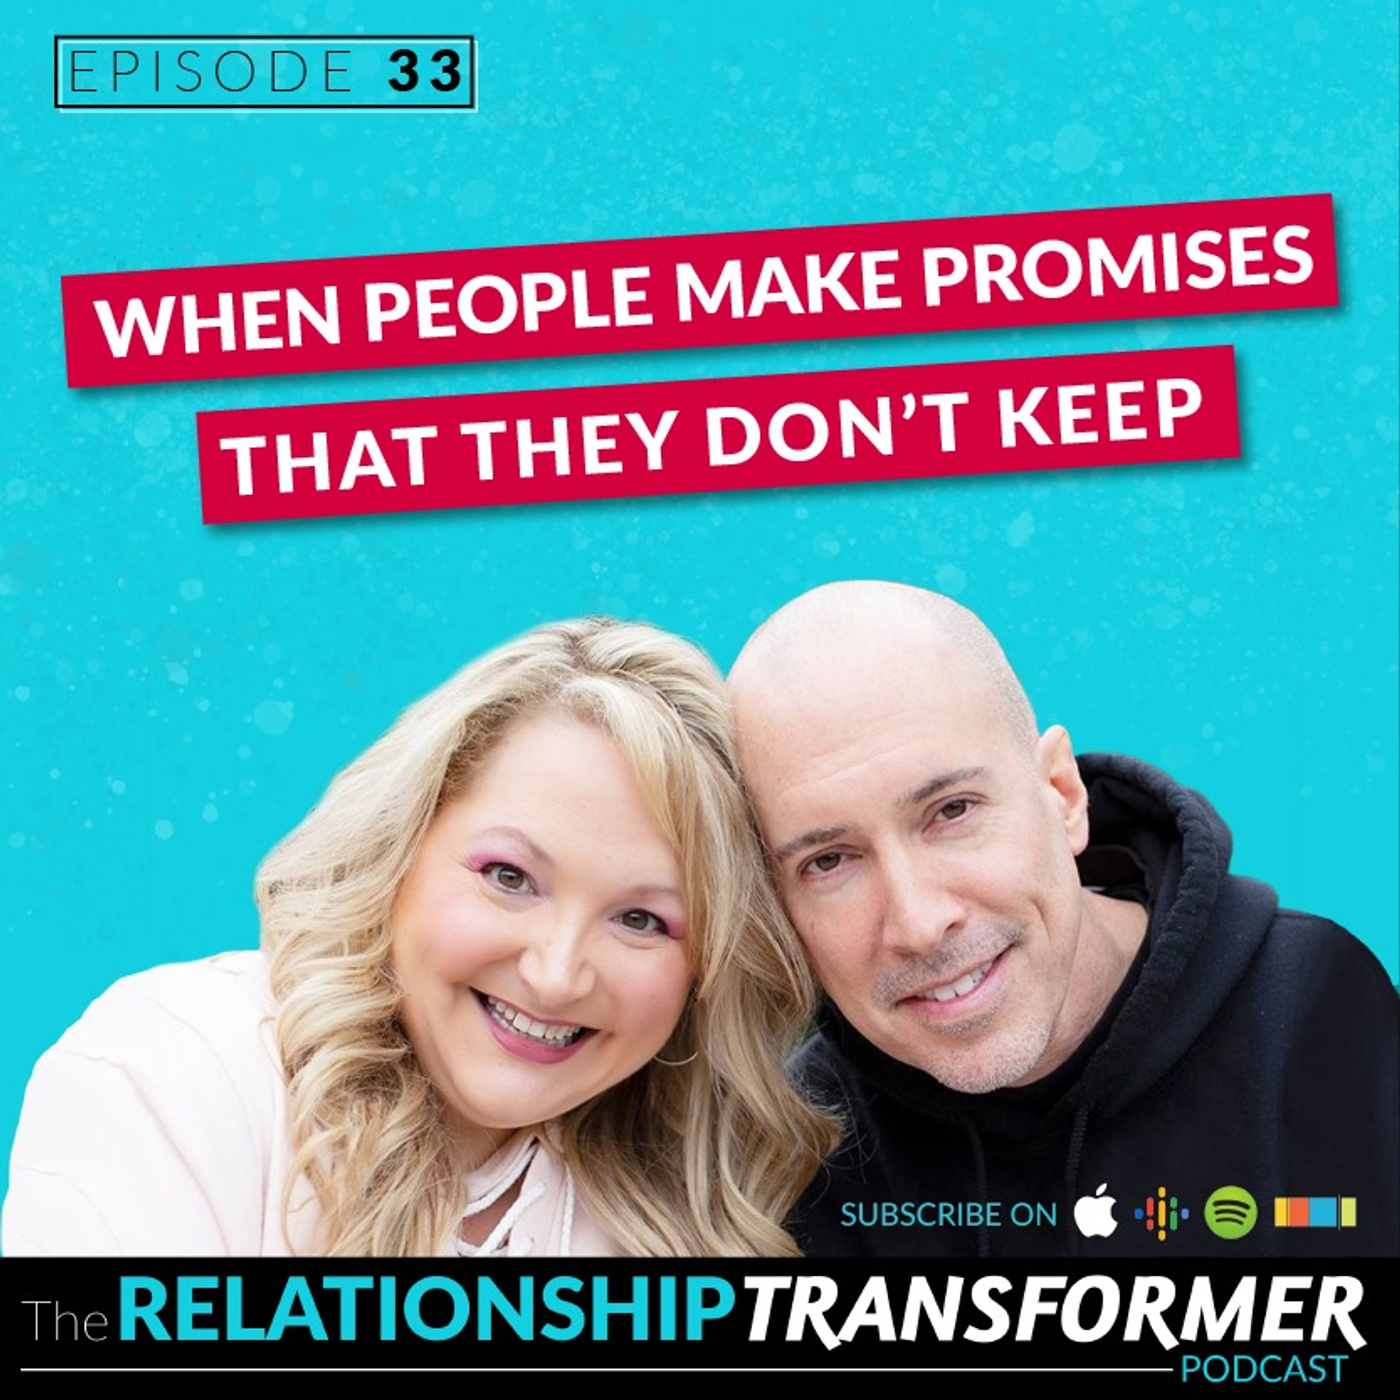 Relationship Transformers - 33: When People Make Promises That They Don't Keep